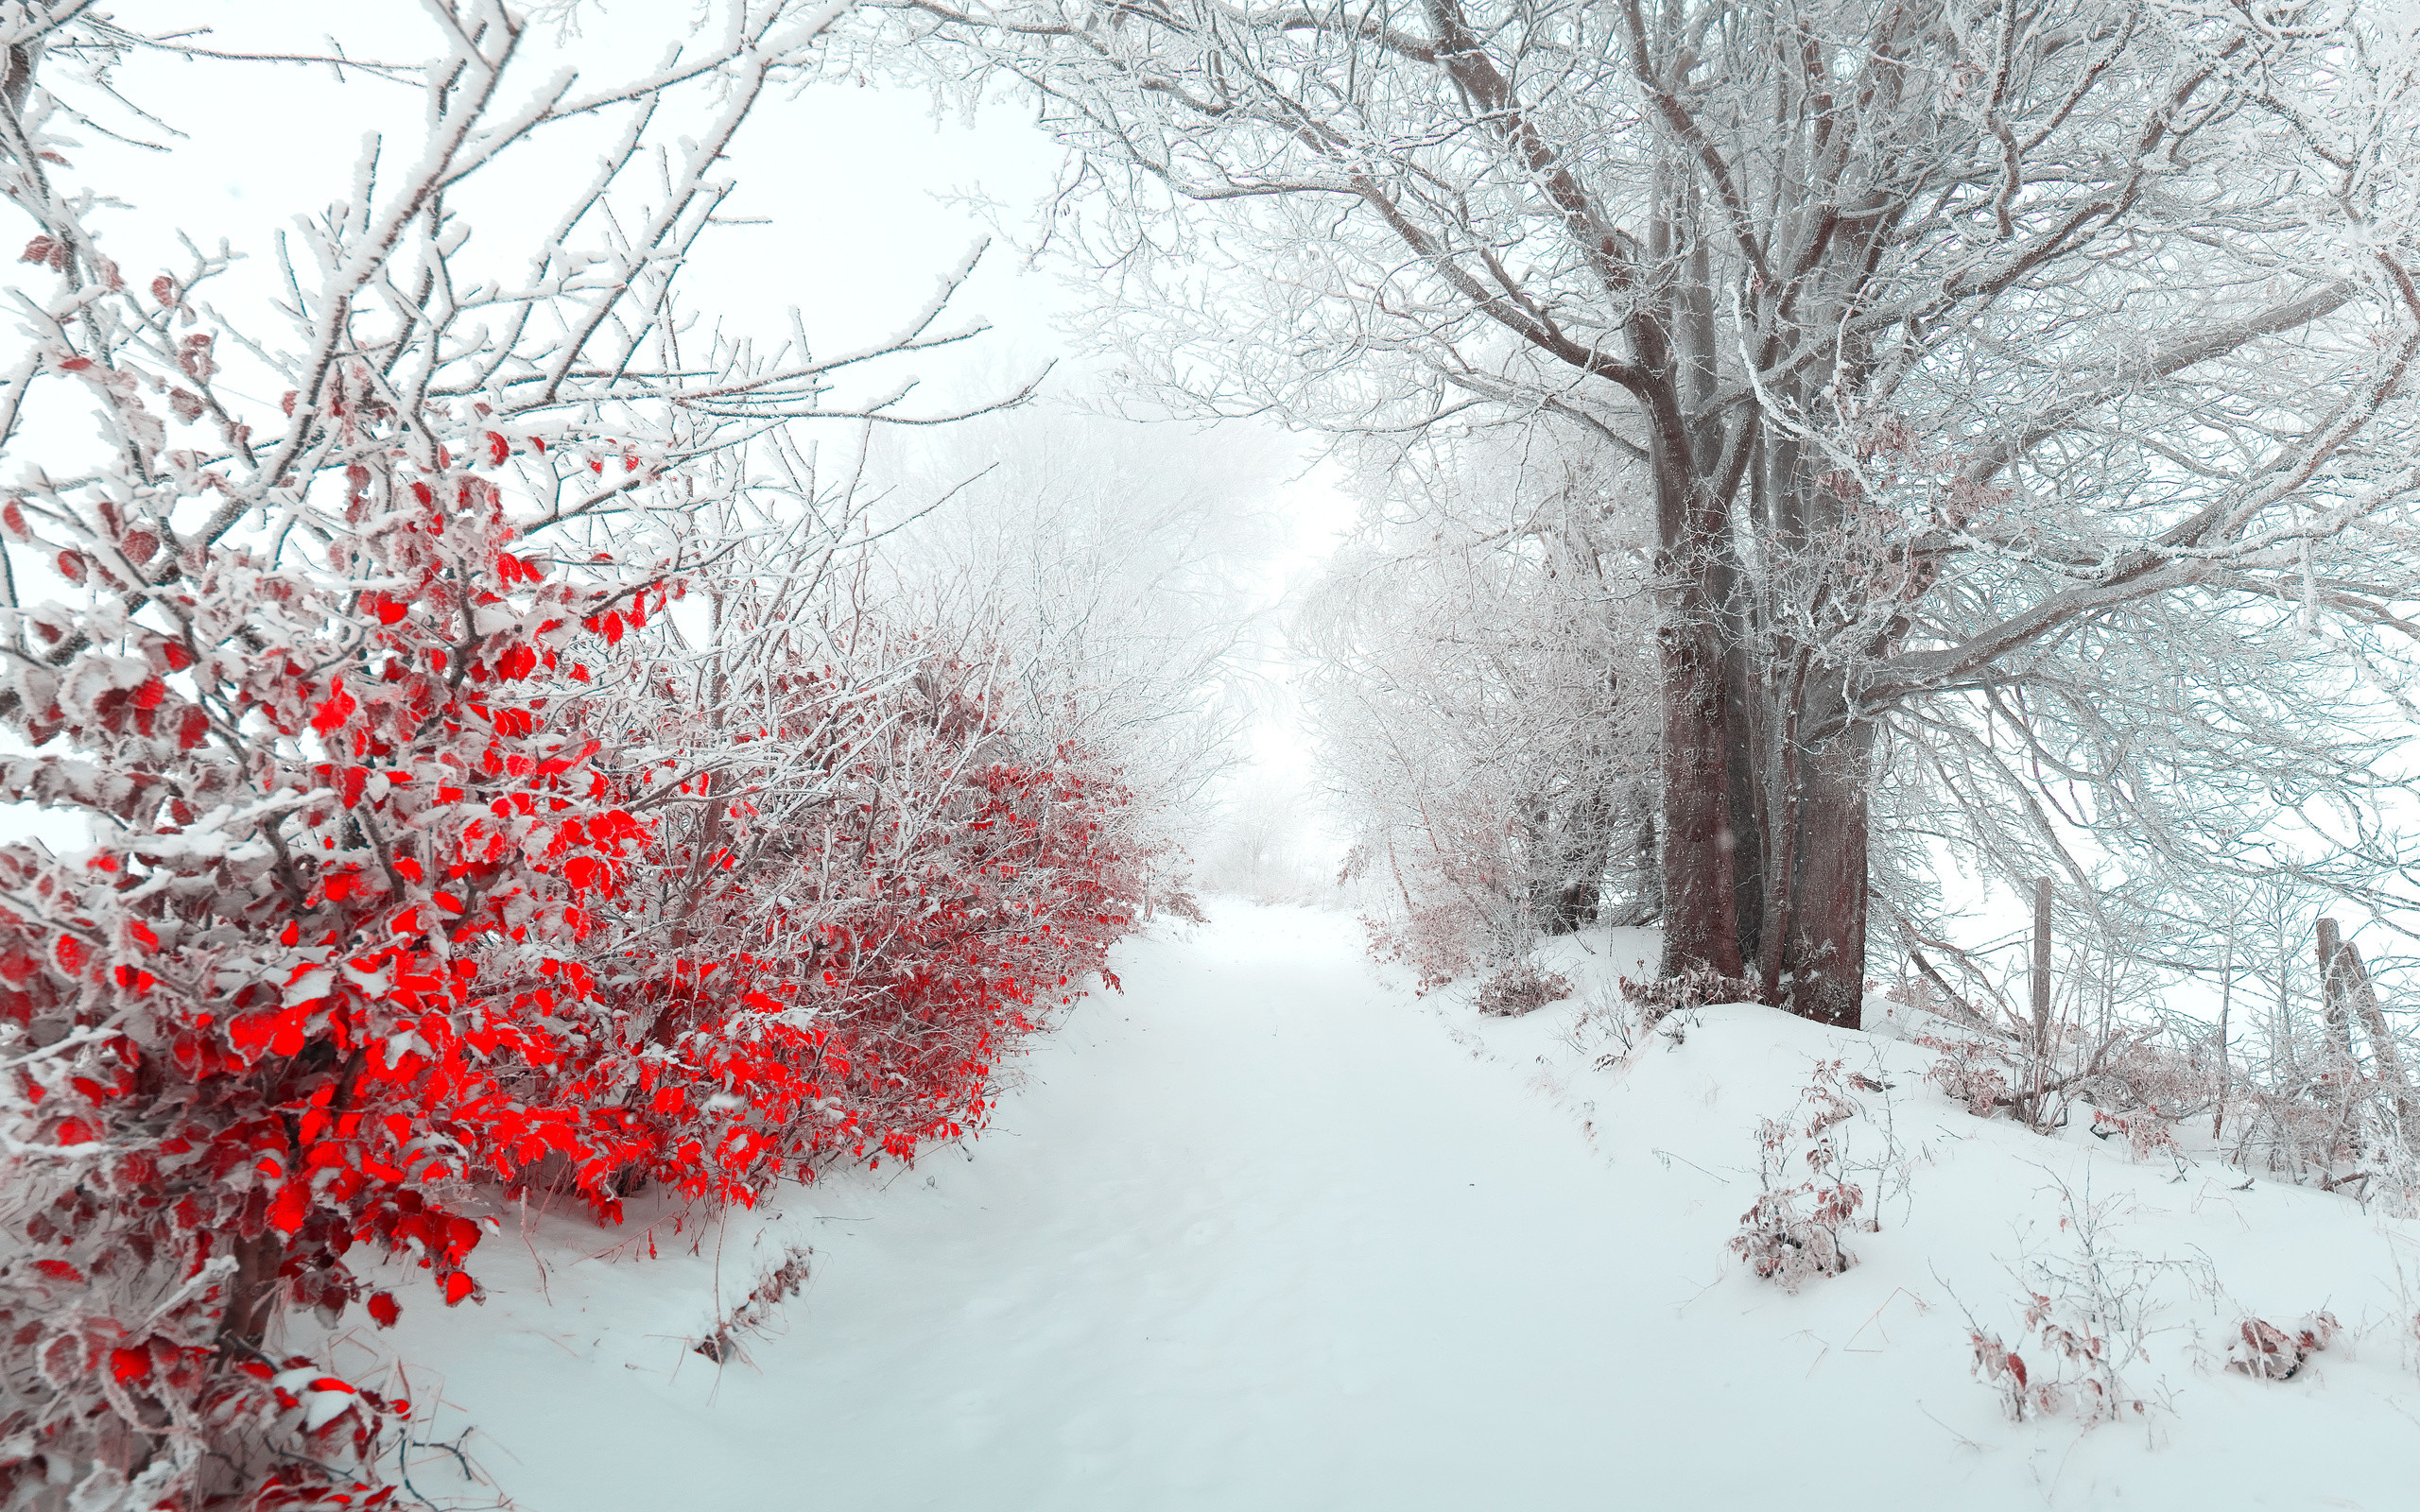 2560x1600 Landscape tree nature beautiful snow winter christmas f wallpaper |   | 182249 | WallpaperUP